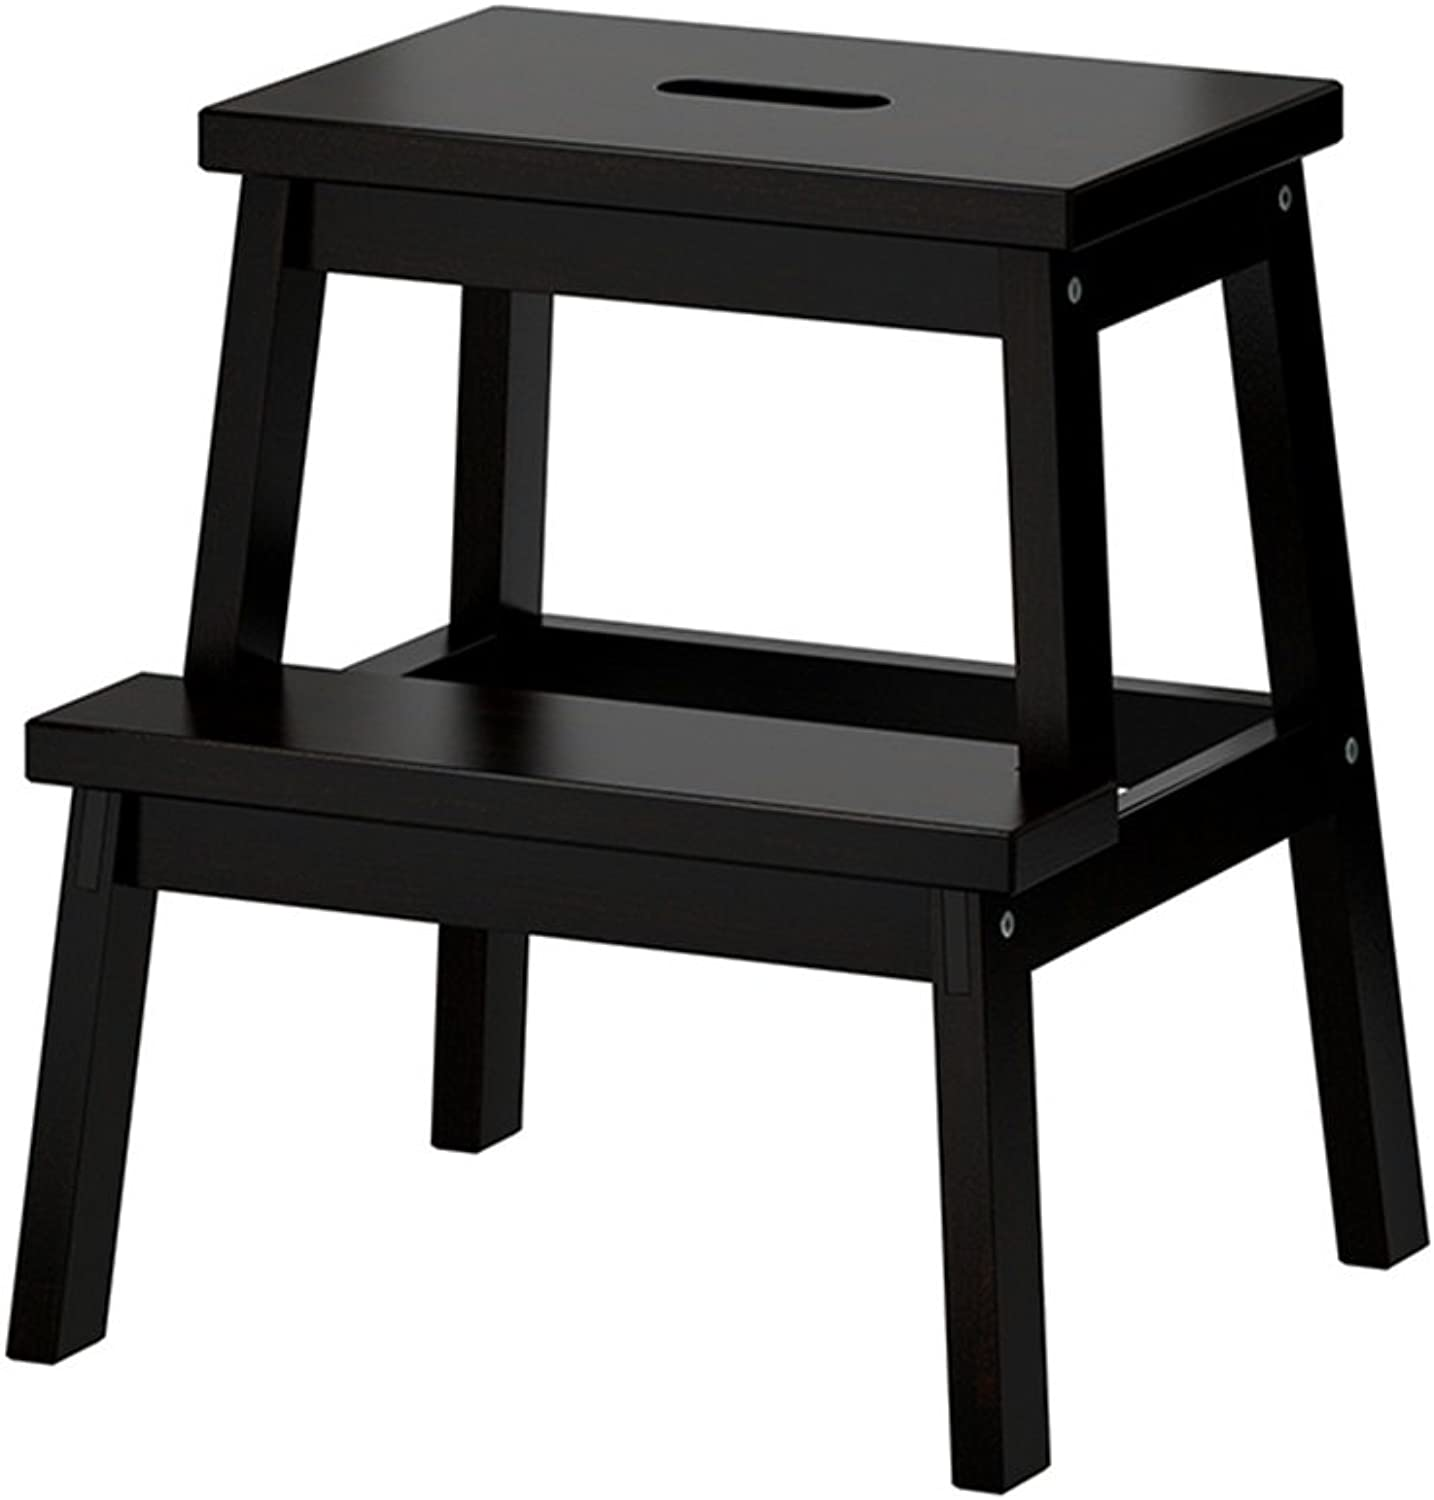 Solid Wood Ladder Stool Multifunctional Portable Stool Foot Stools Changing shoes Folding Chairs with 2 Steps,Black